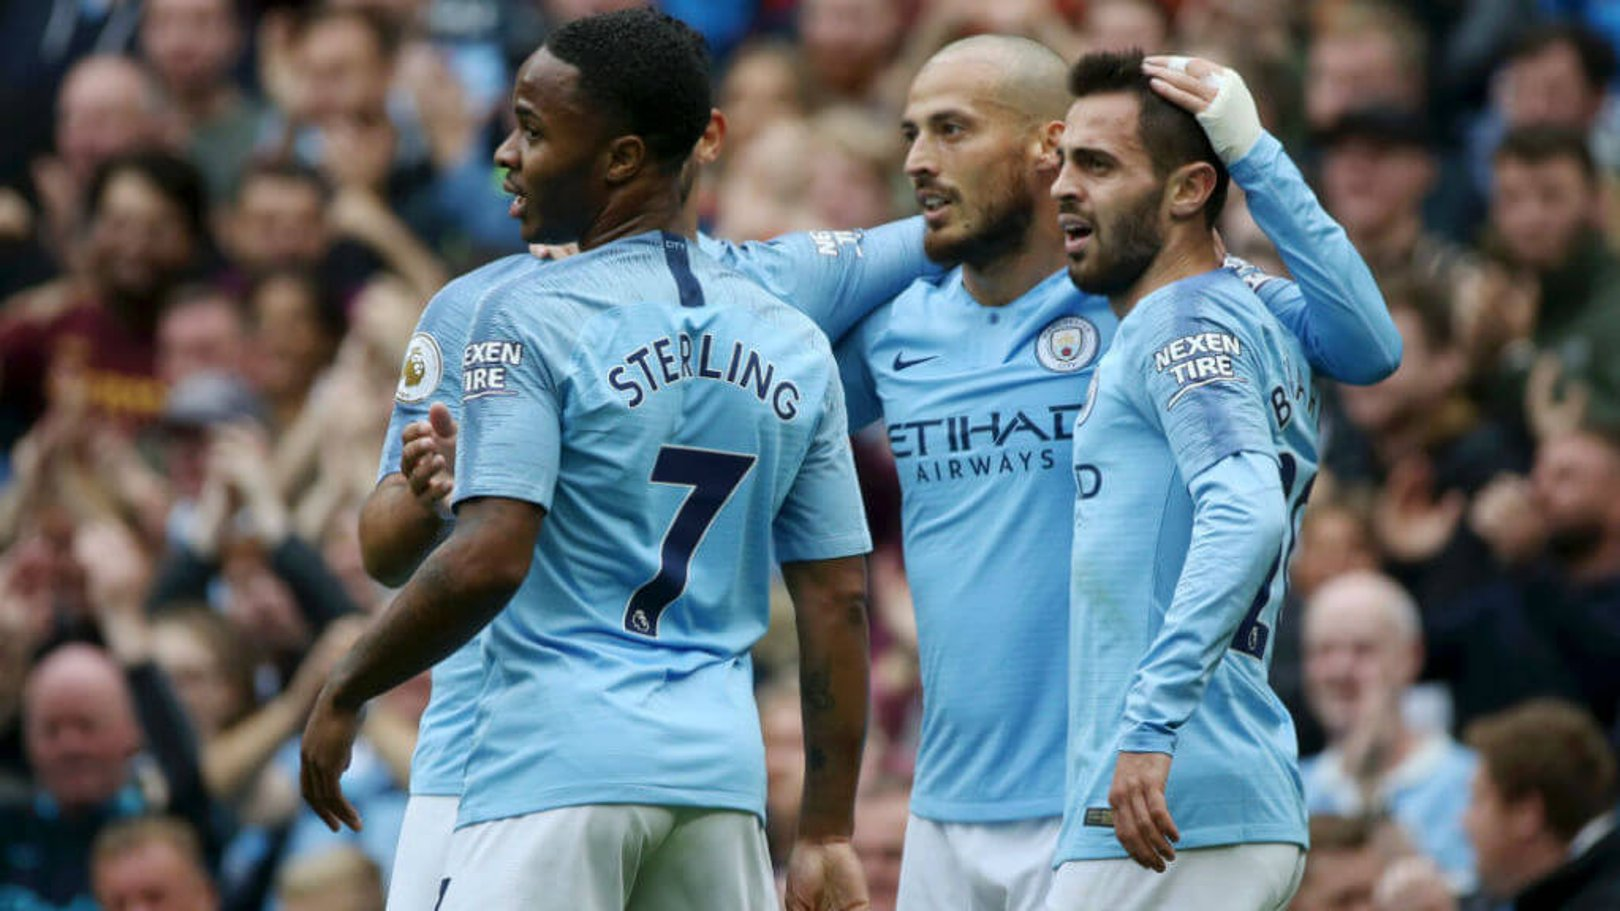 HALF A TON: Silva celebrates hitting his 50th City goal during our win over Fulham